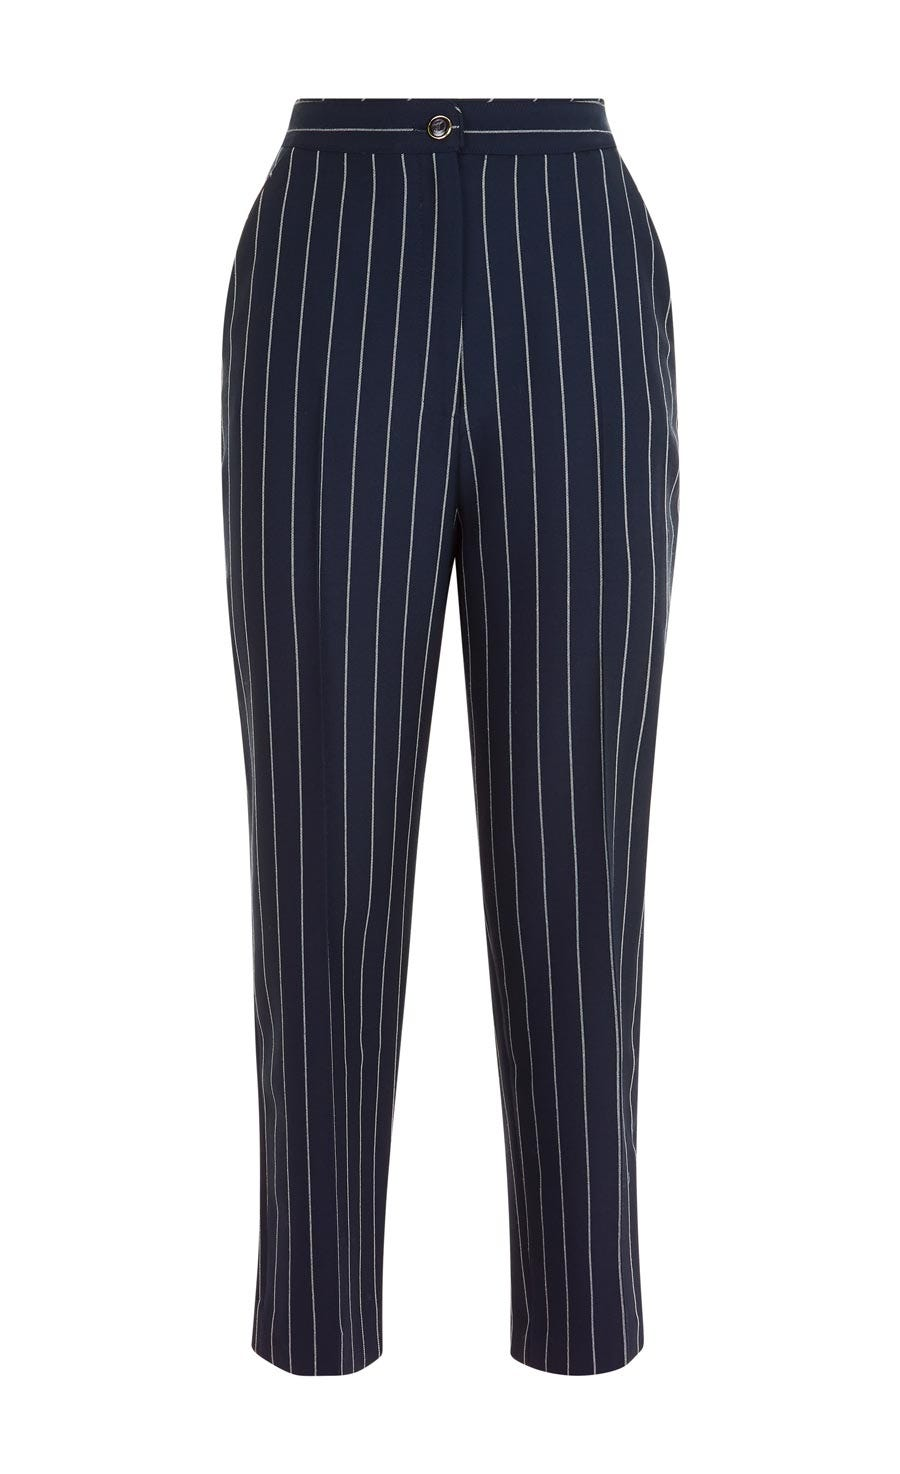 Francesca Tailored Trouser